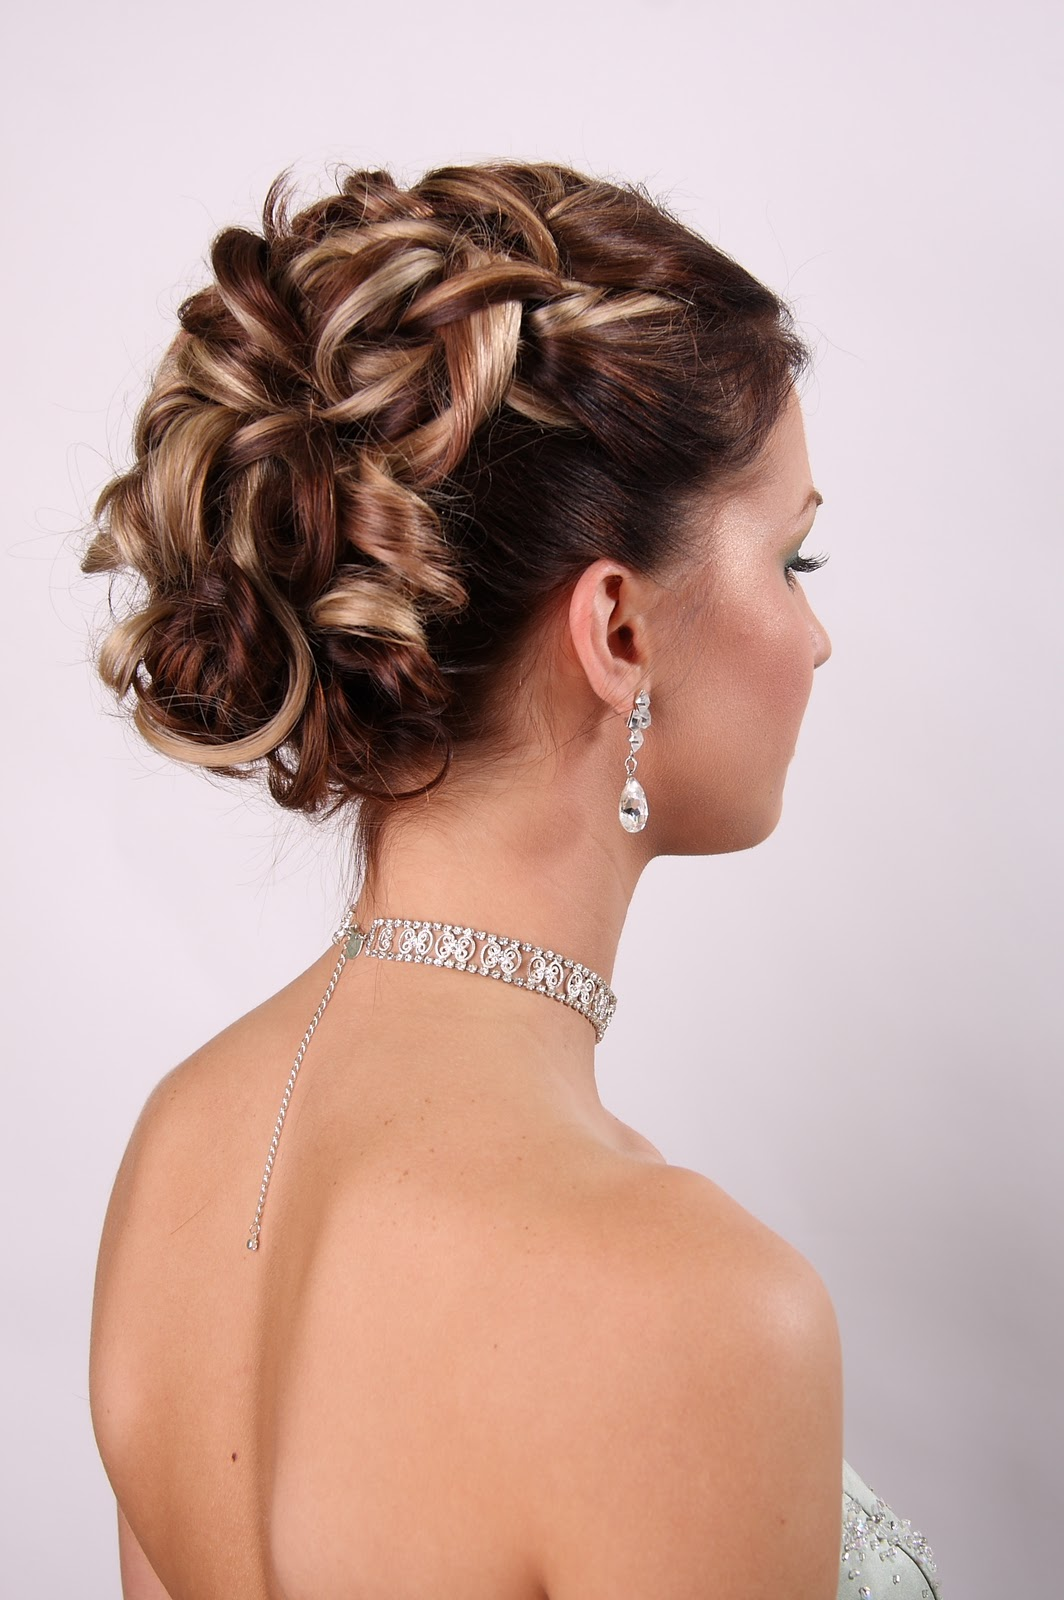 50 hairstyles for weddings to look amazingly special fave hairstyles. Black Bedroom Furniture Sets. Home Design Ideas